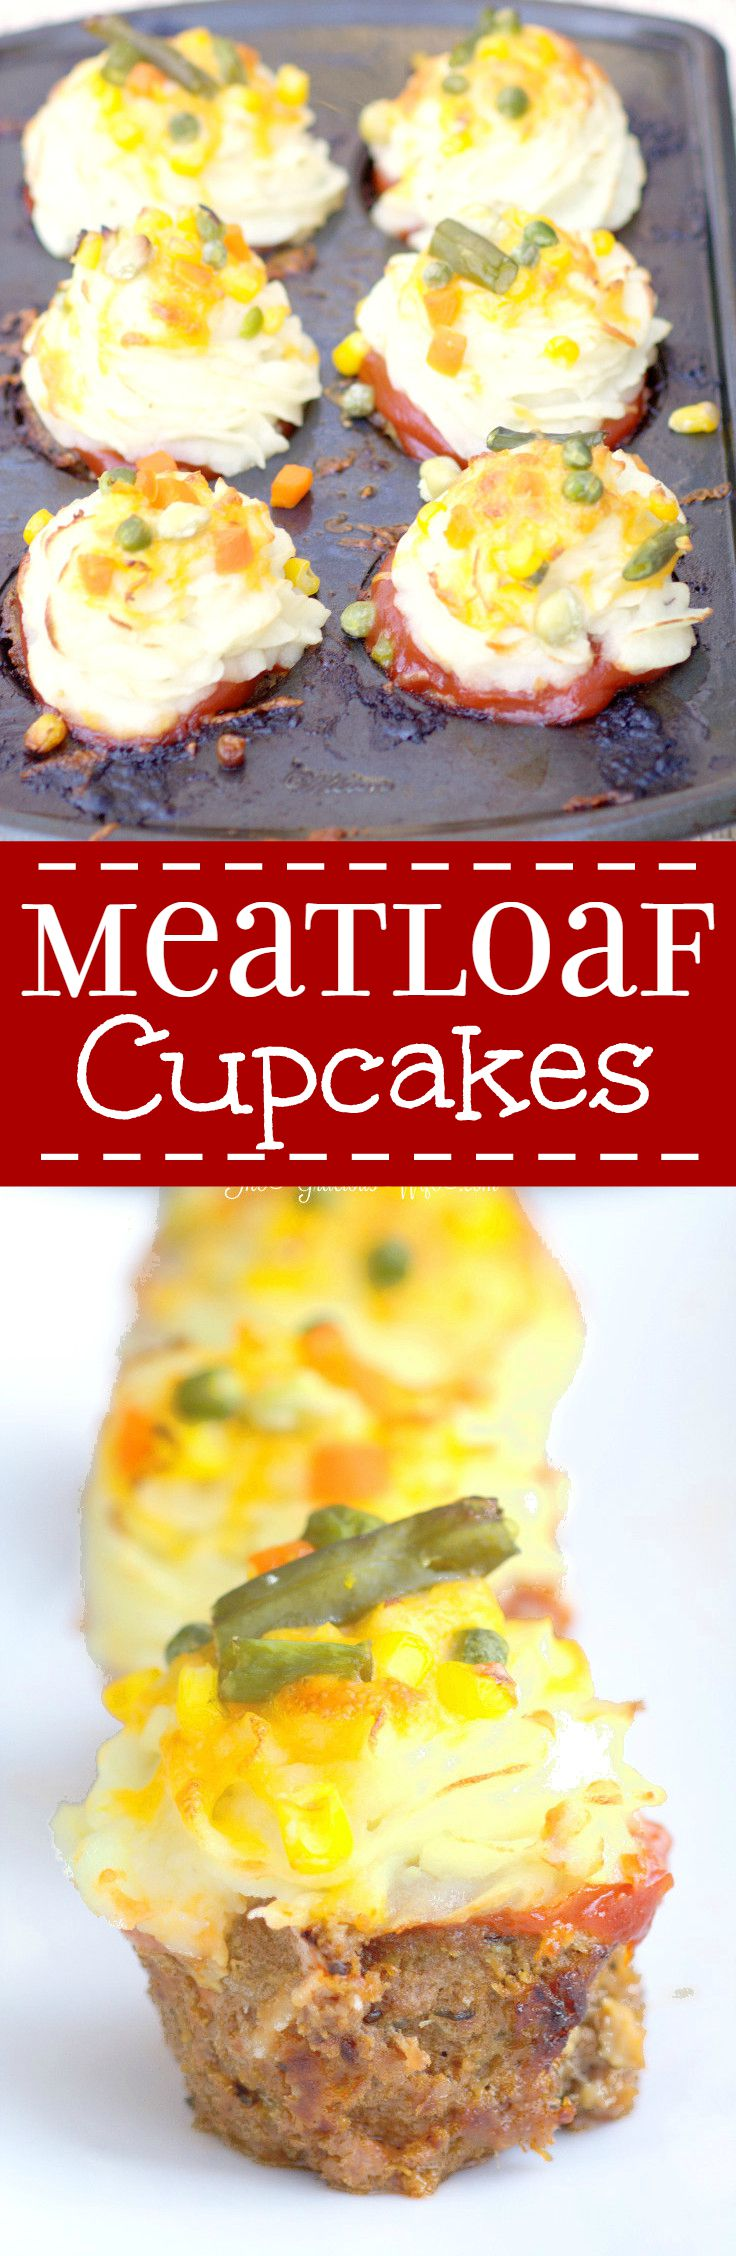 Meatloaf Cupcakes The Gracious Wife